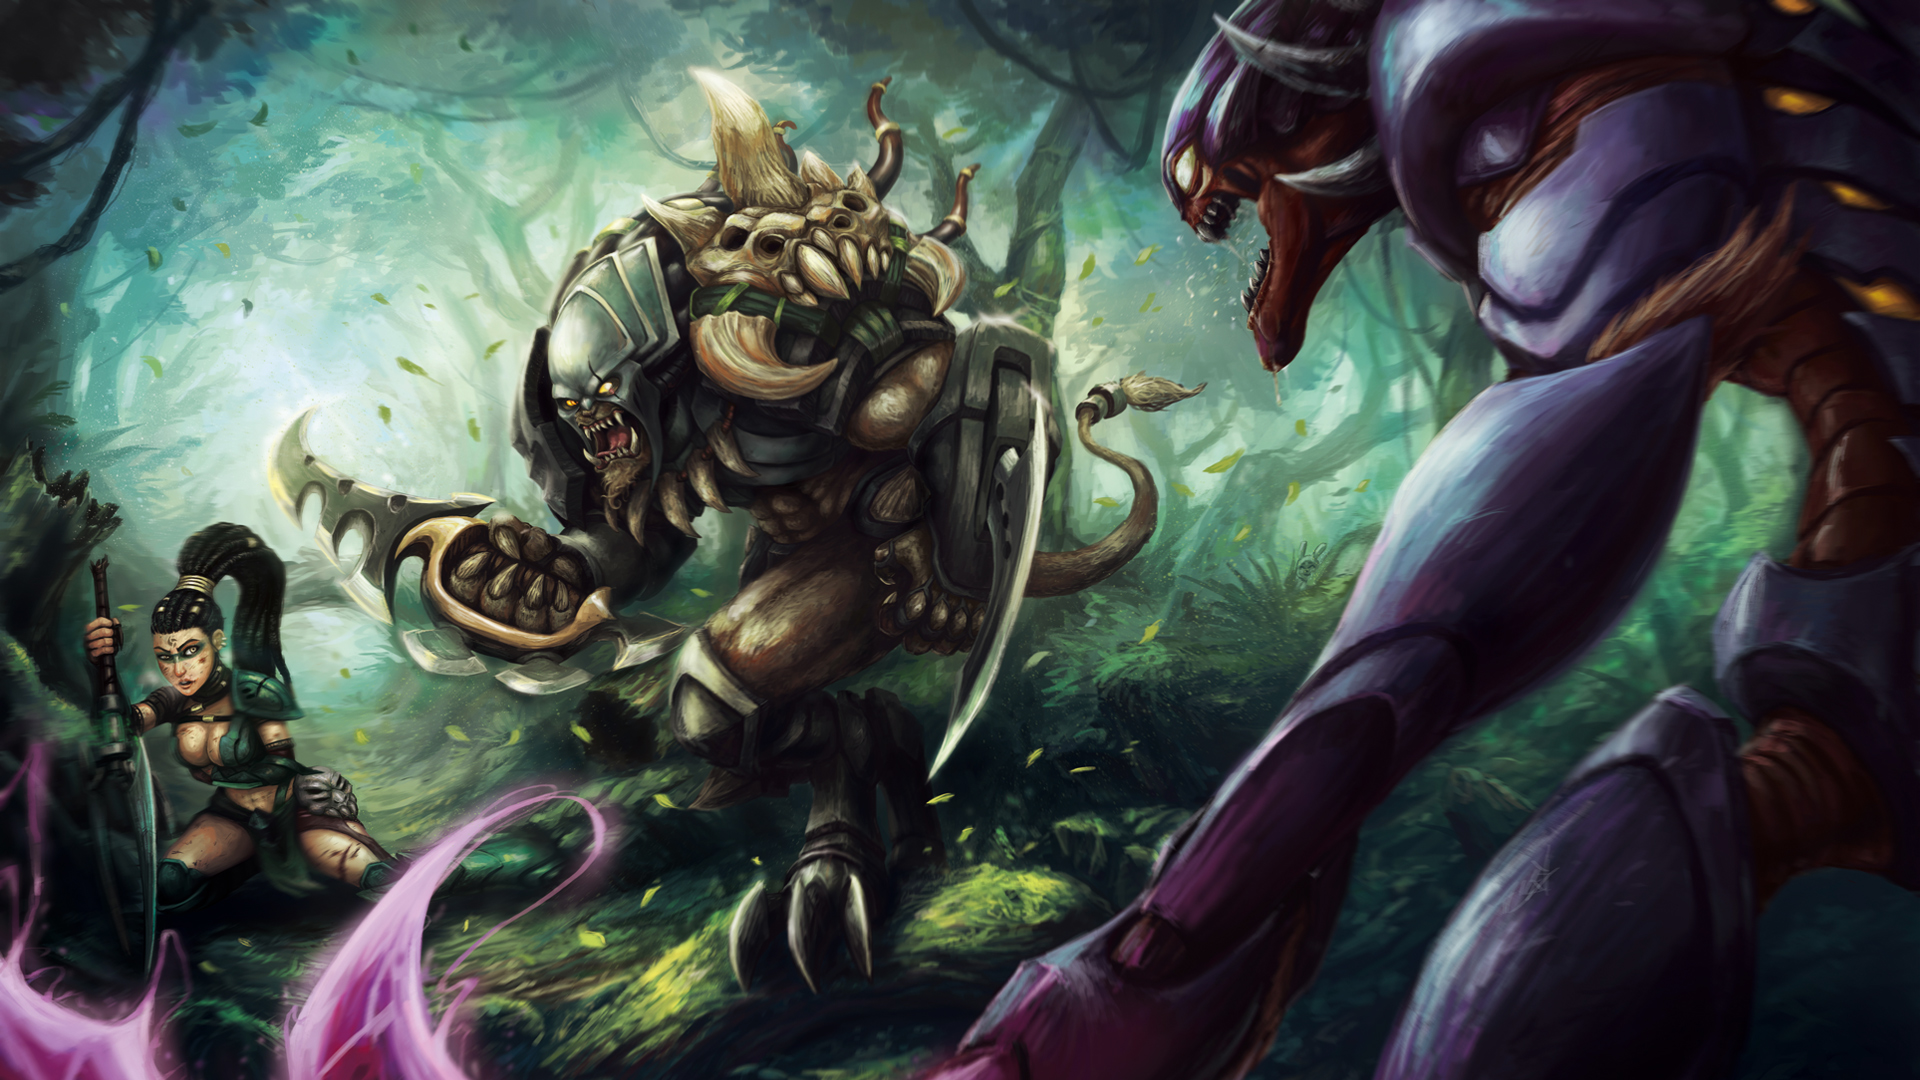 headhunter nidalee rengar khazix league of legends 1920x1080jpg 1920x1080